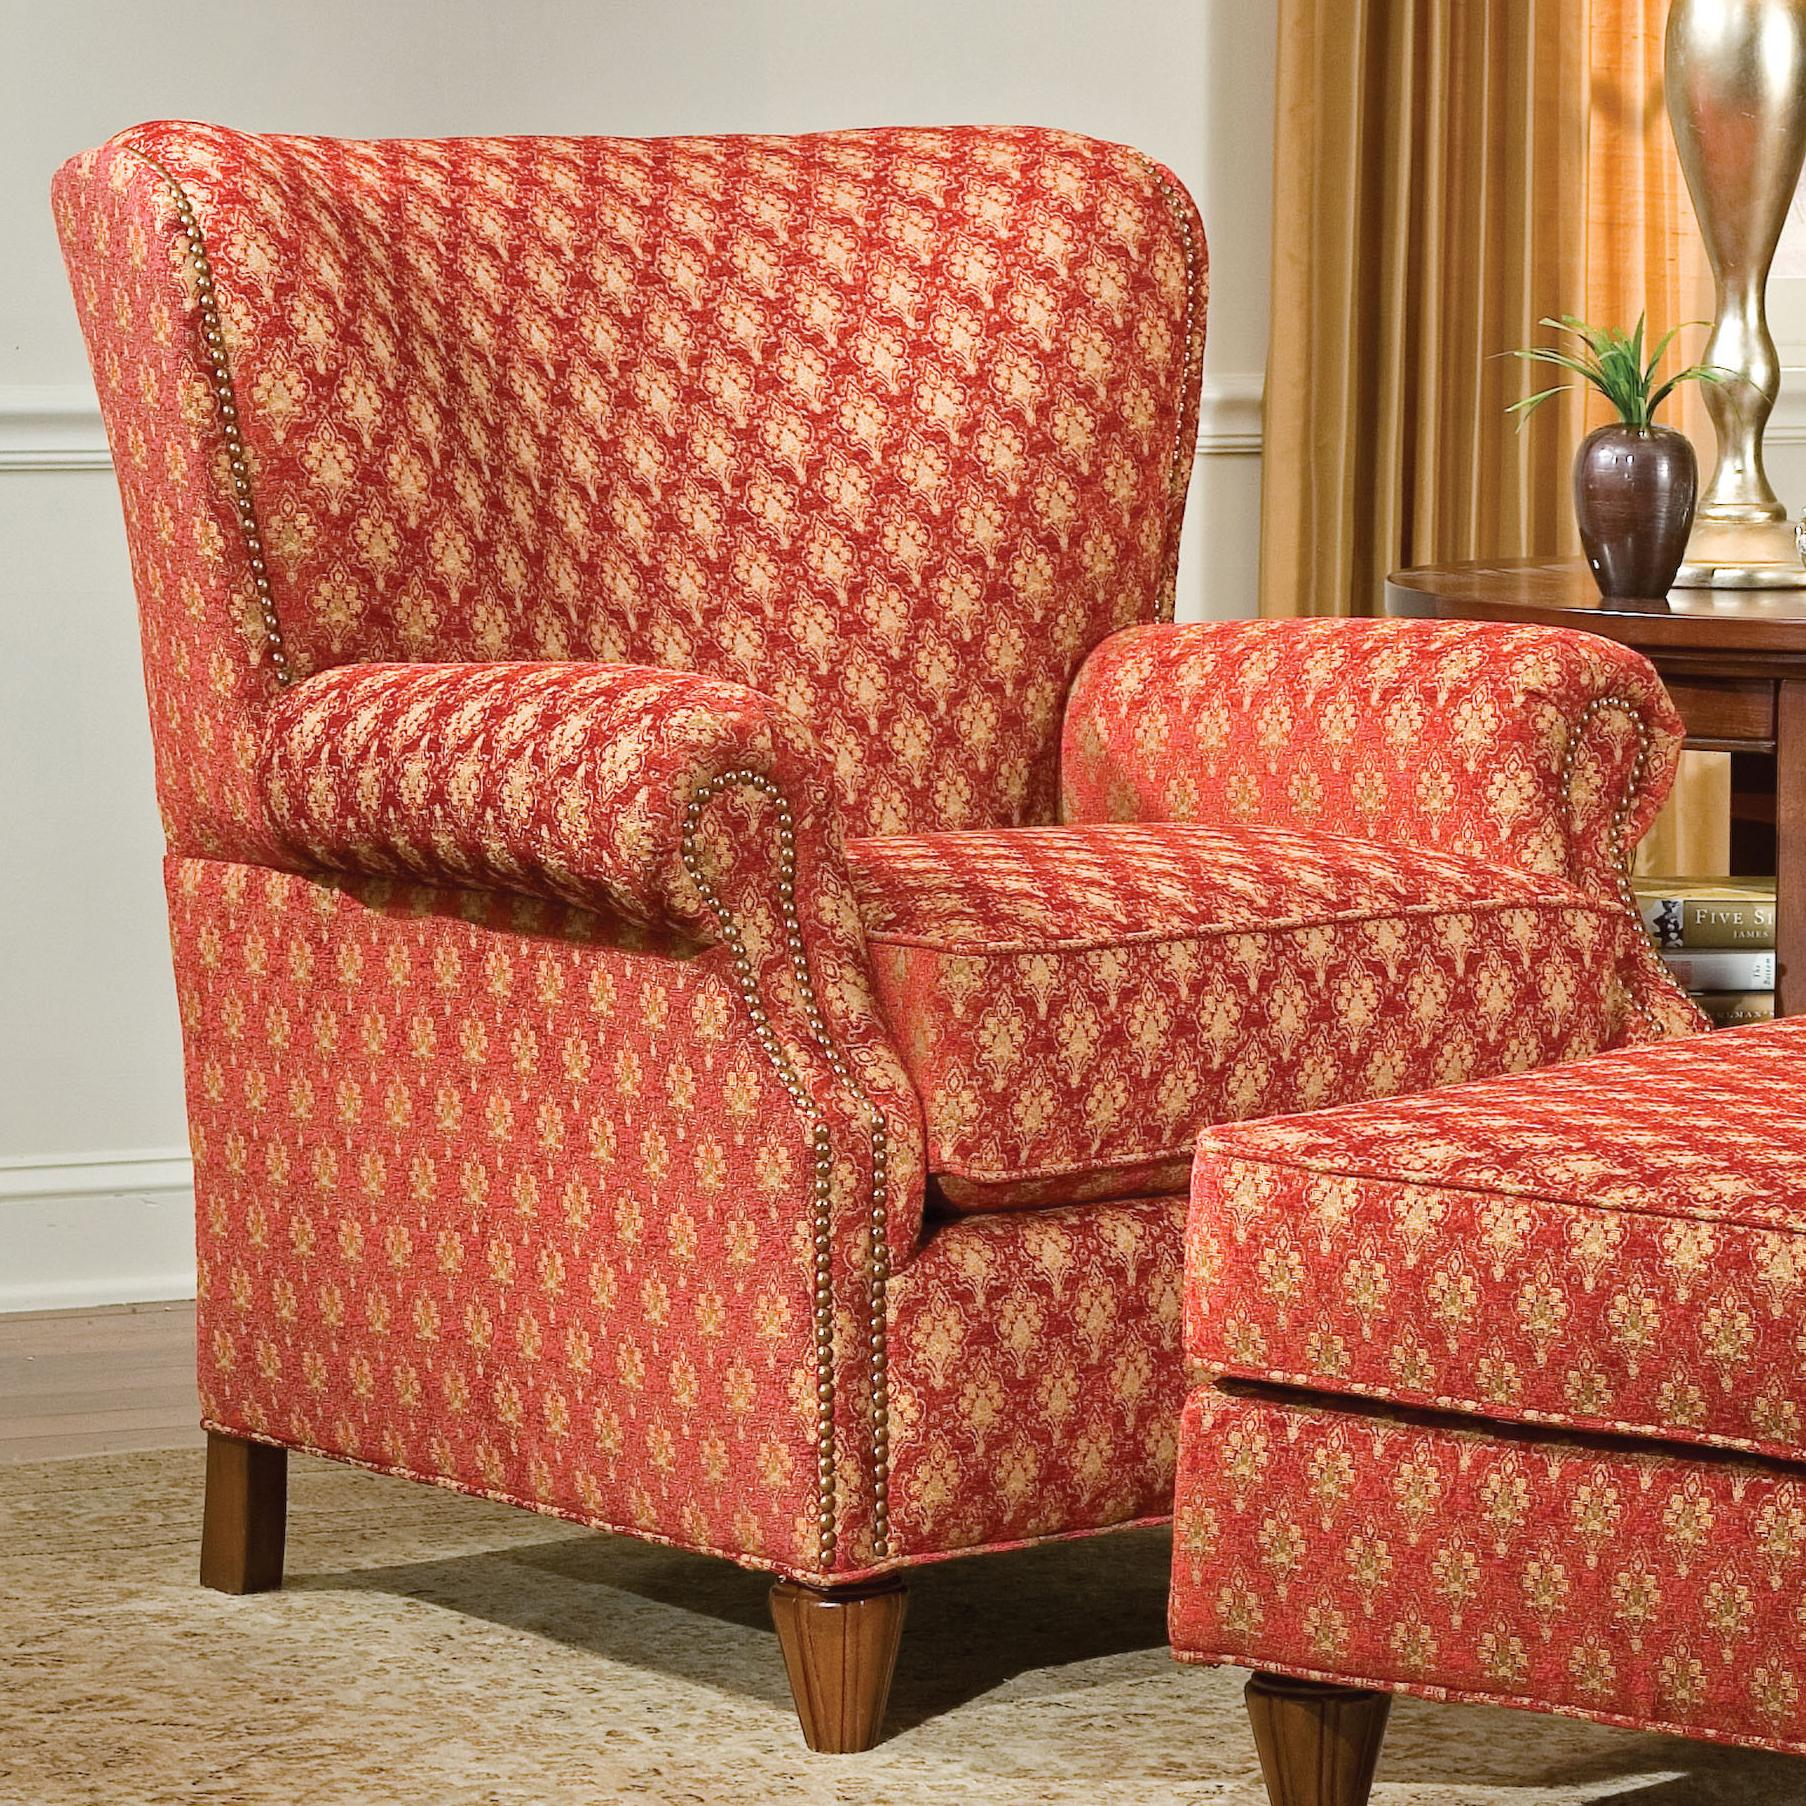 1403 Lounge Chair by Fairfield at Lindy's Furniture Company